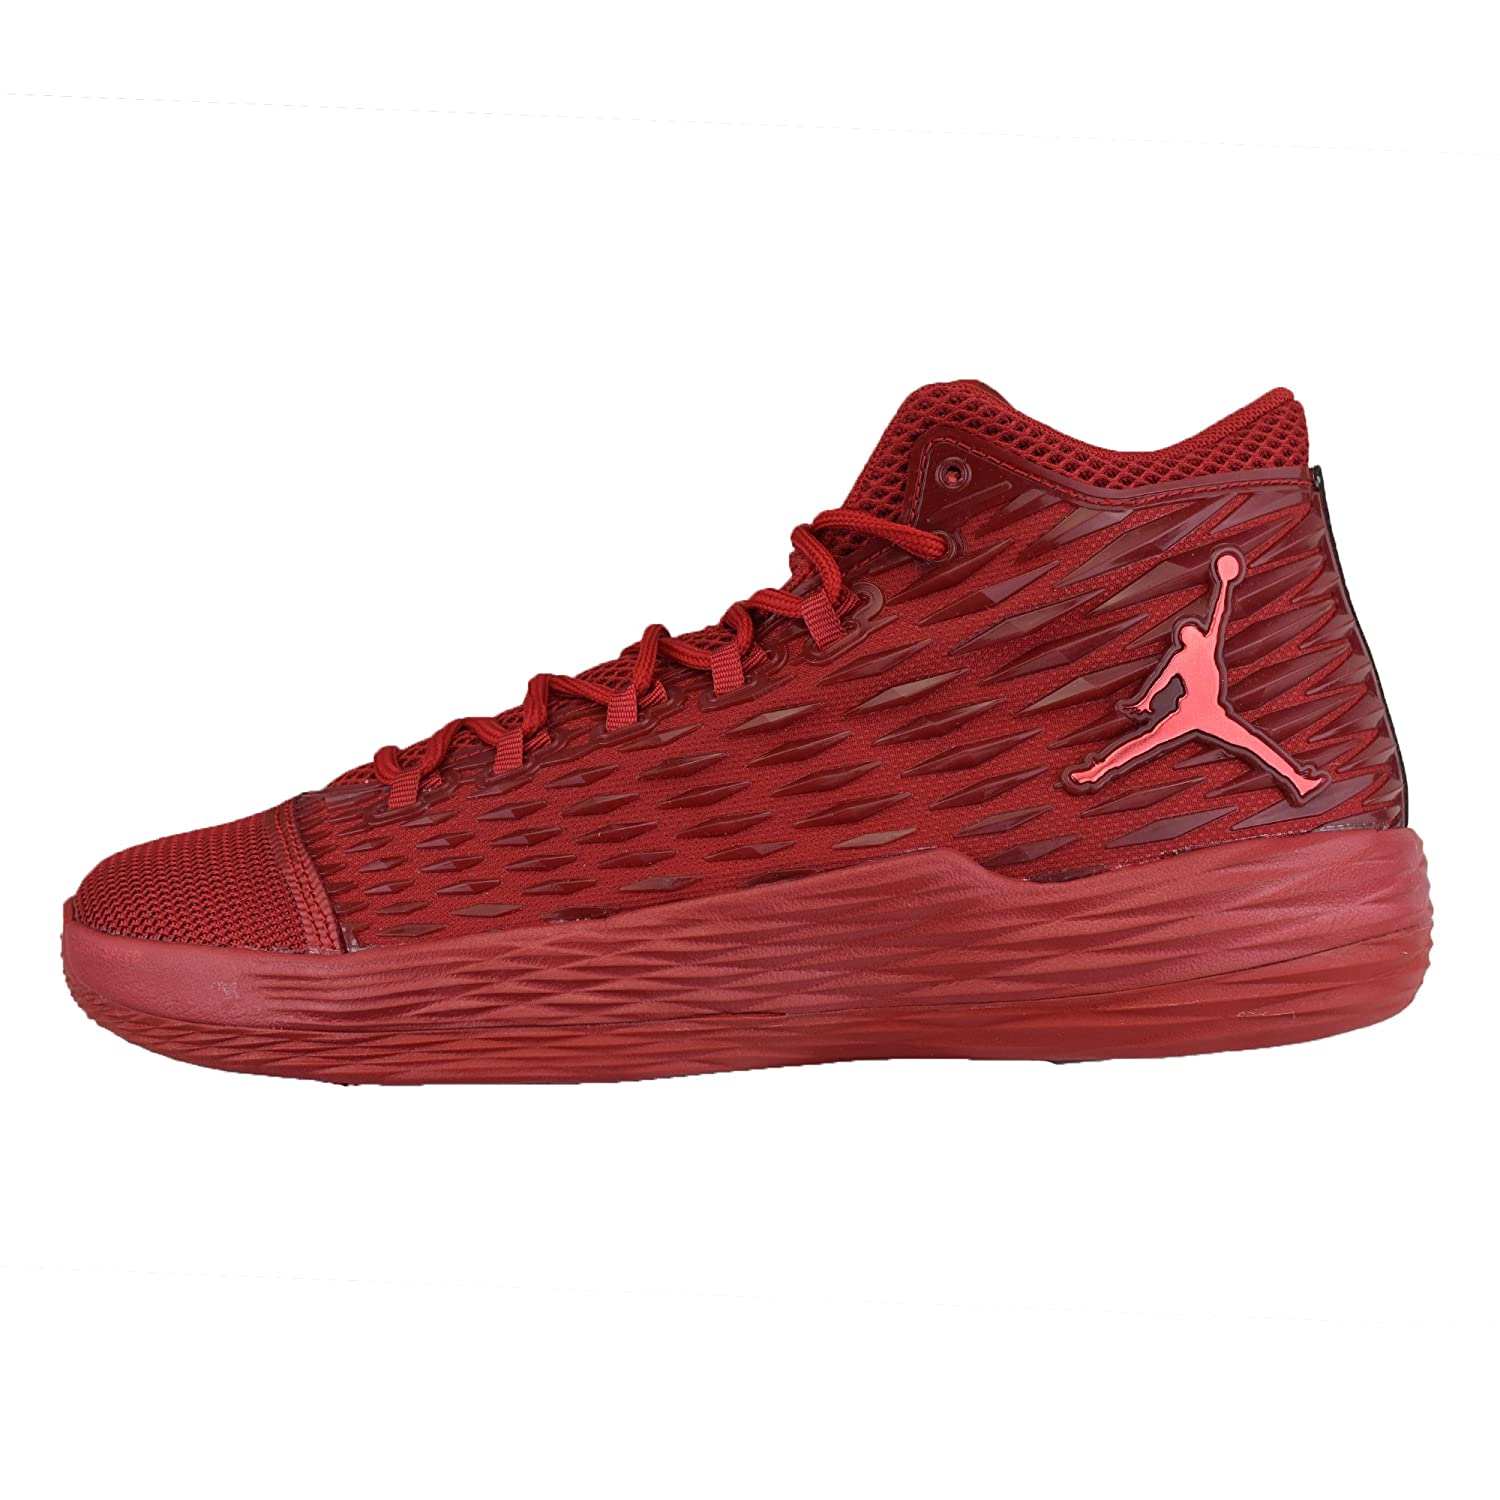 4049ab29d78e Nike Jordan Melo M13 Men s Basketball Shoes (UK-13)  Amazon.co.uk  Shoes    Bags